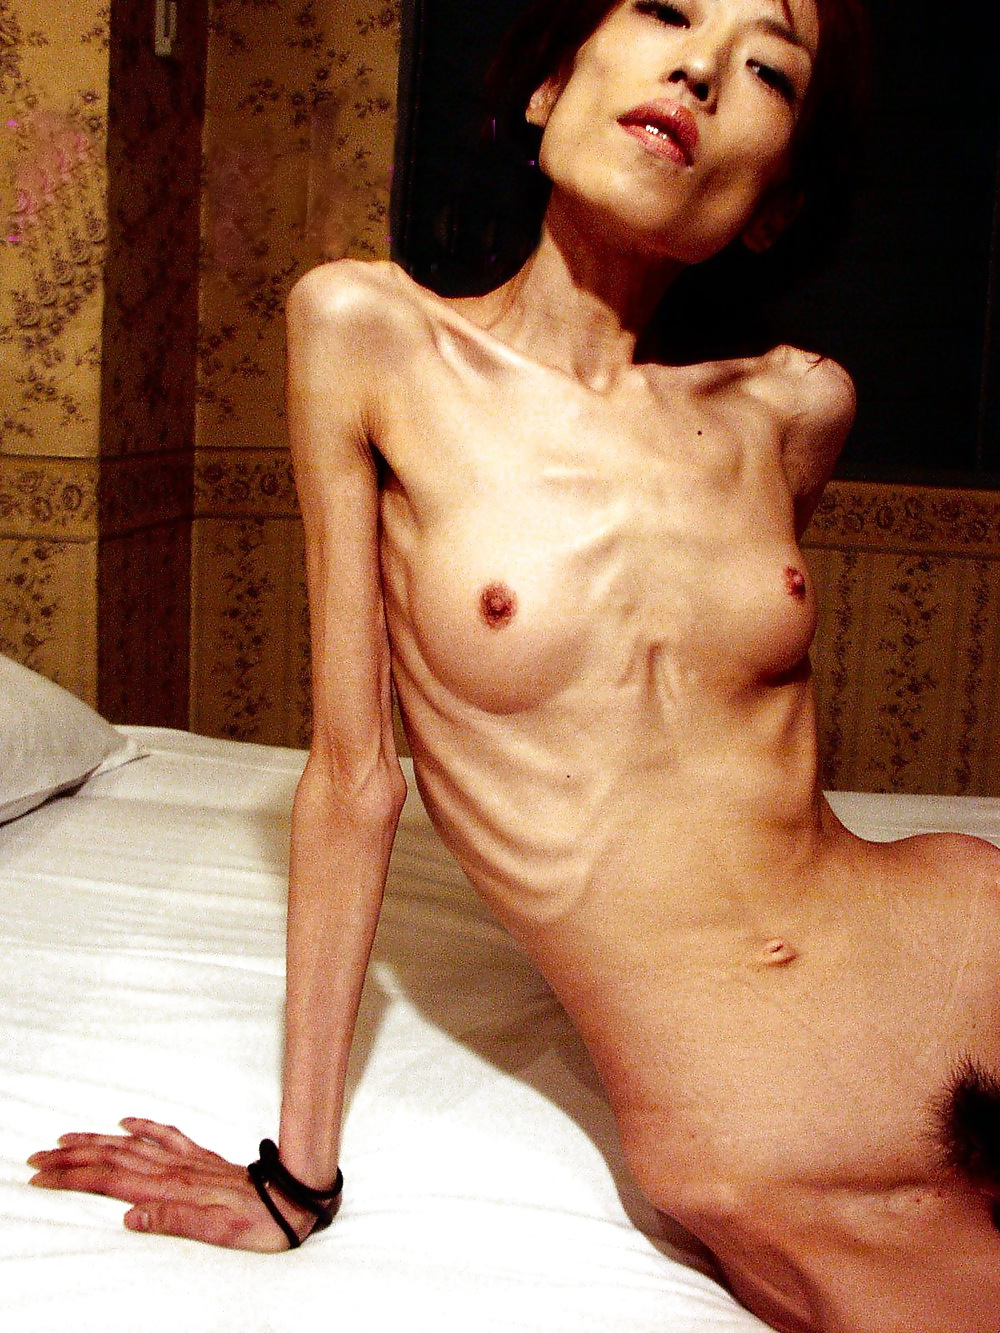 Nude anorexia photos — pic 11